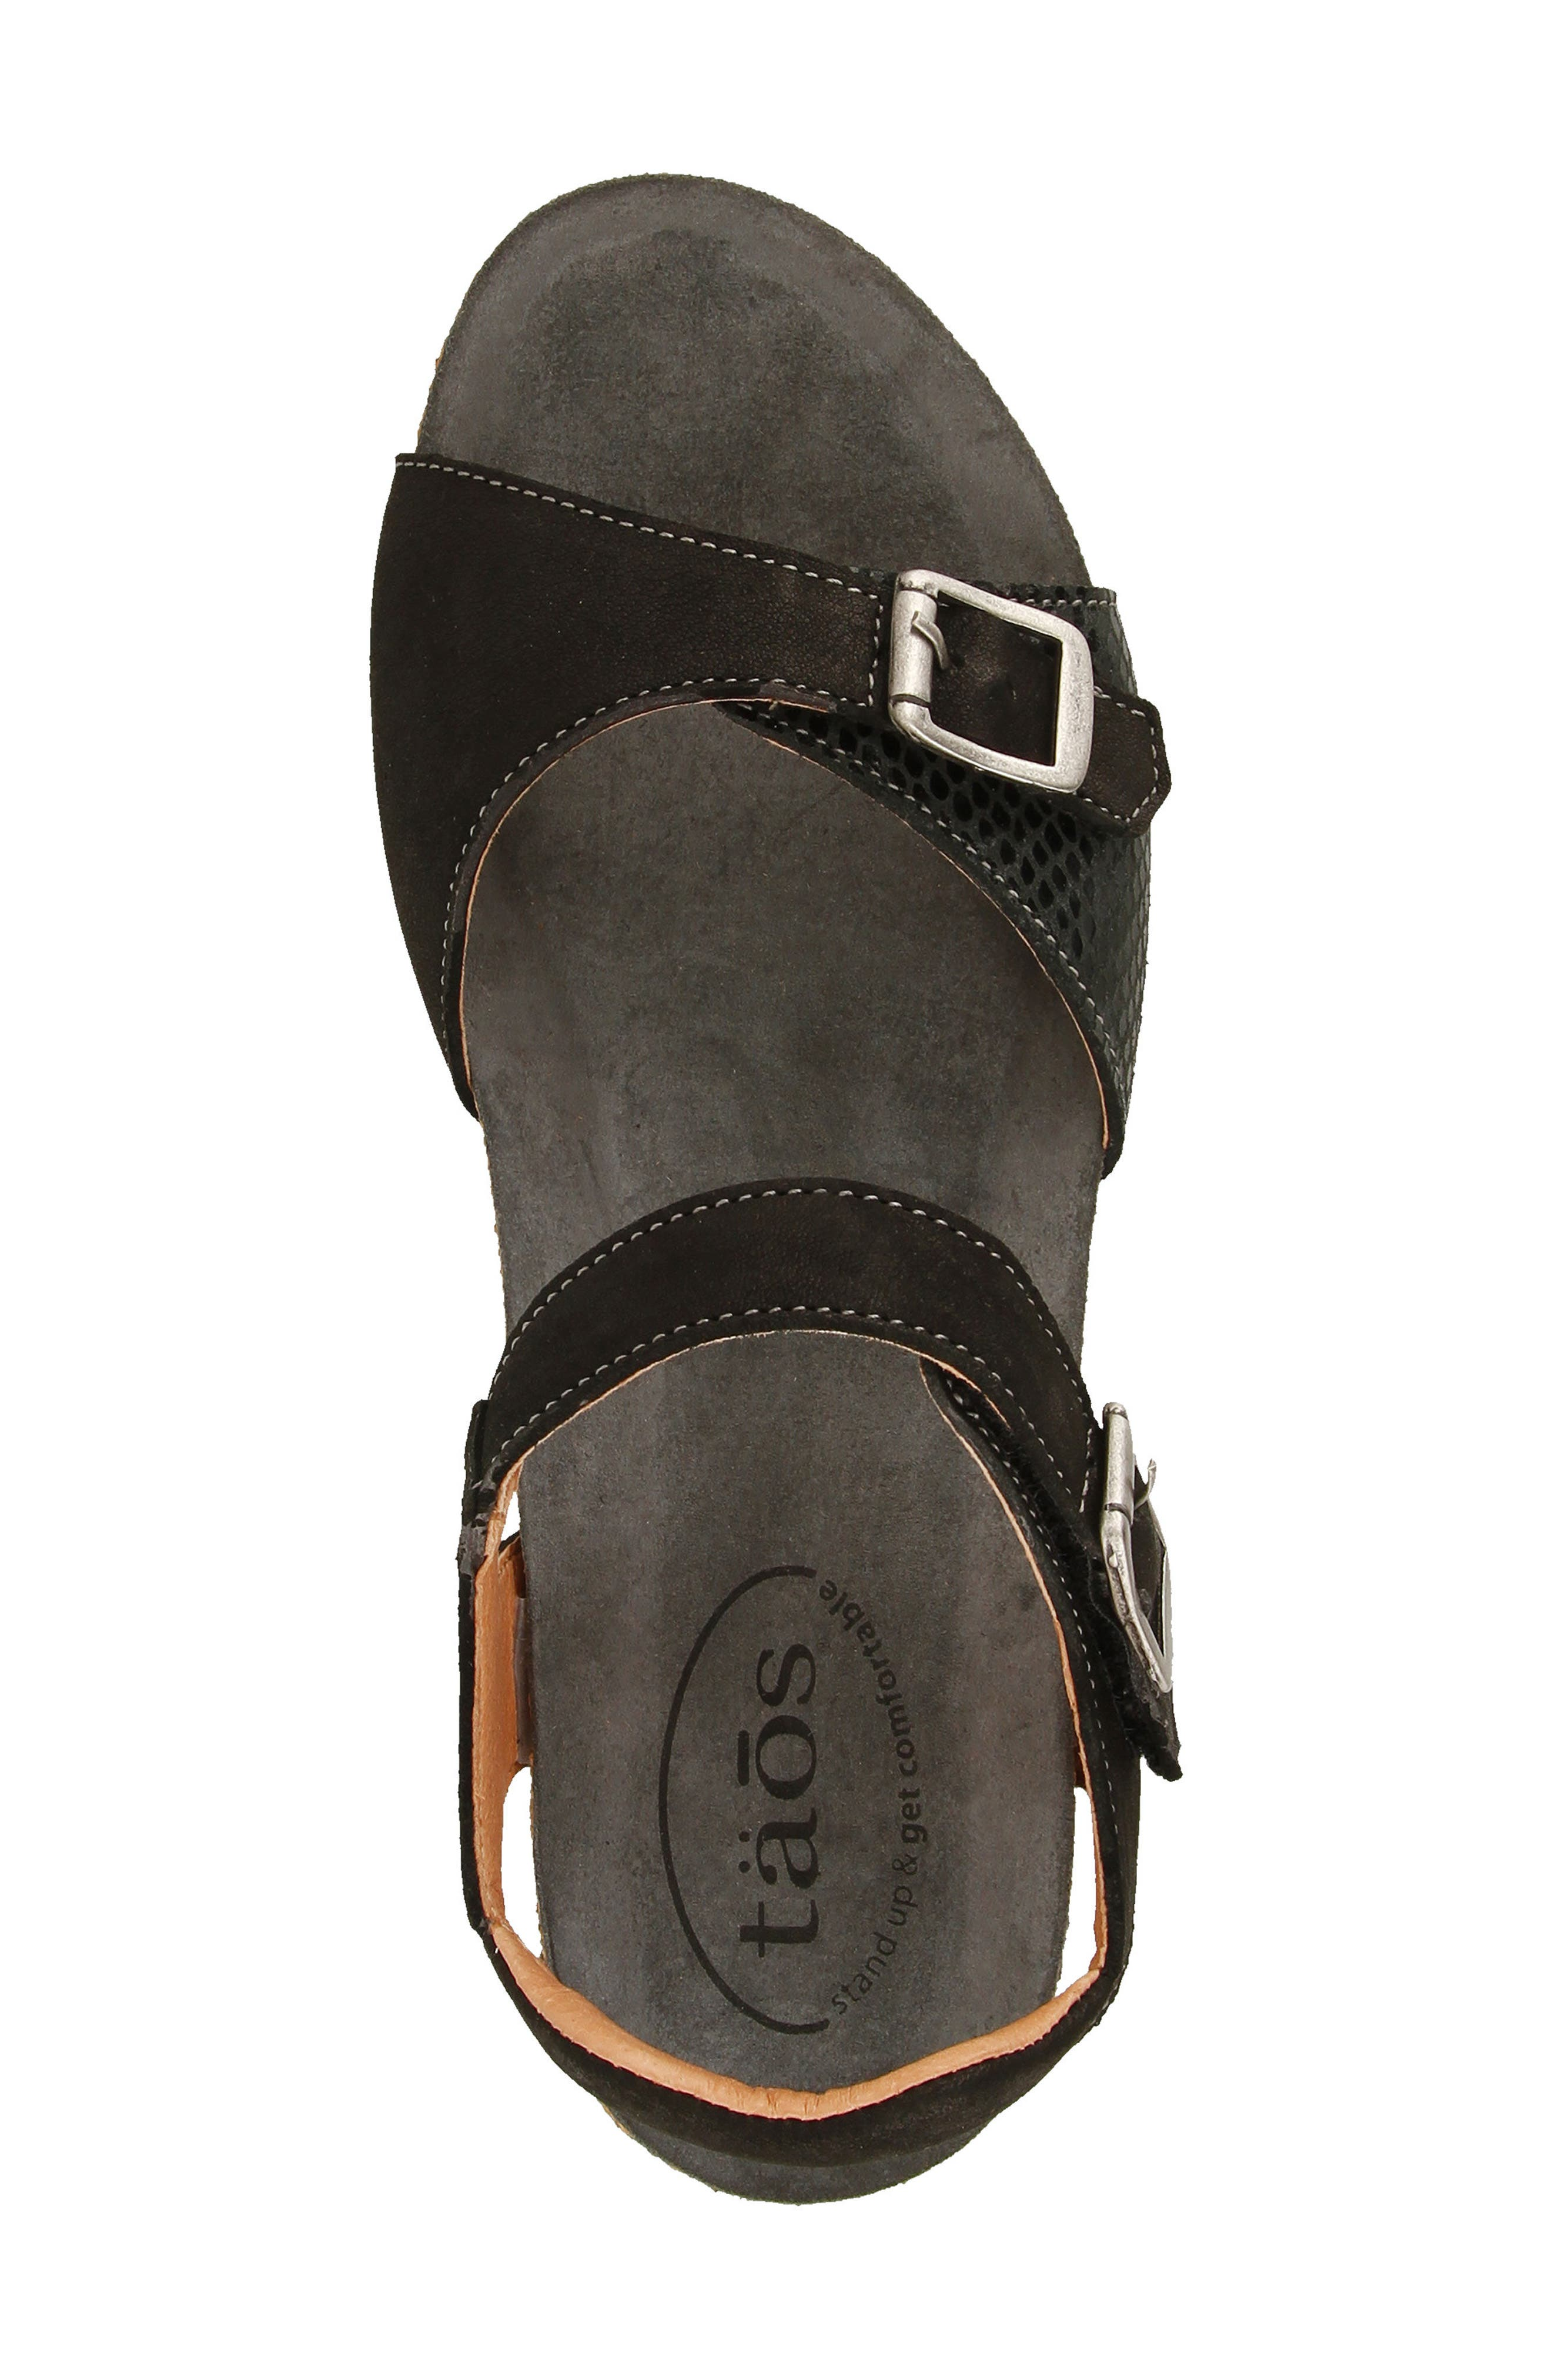 Traveler Wedge Sandal,                             Alternate thumbnail 4, color,                             002